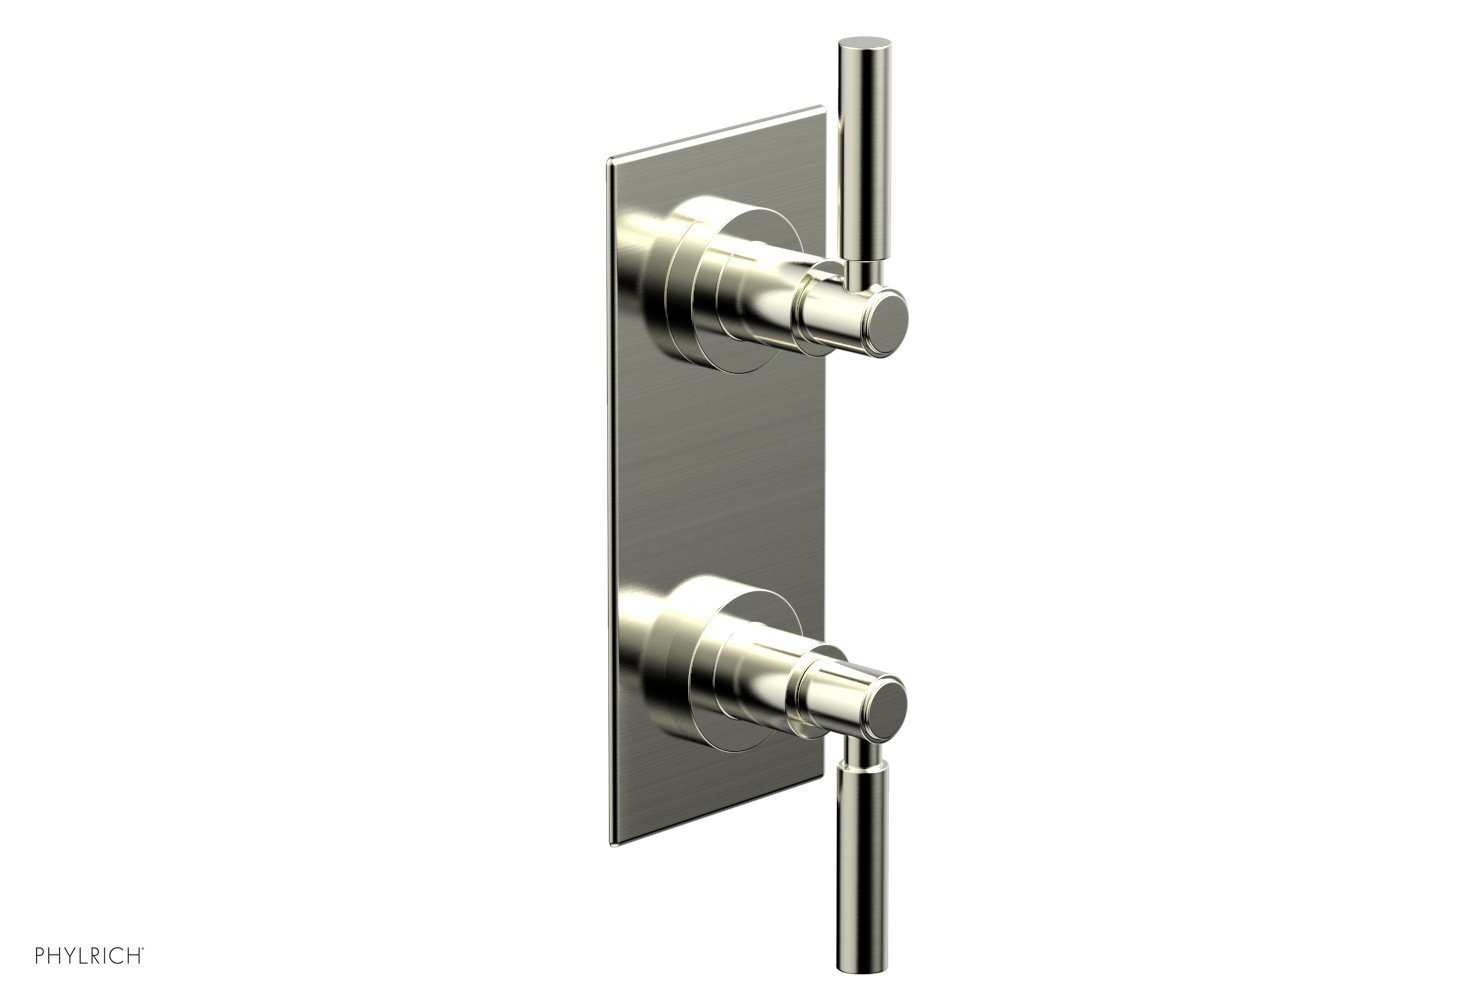 """BASIC 1/2"""" Thermostatic Valve with Volume Control or Diverter Lever Handles 4-344 - Satin Nickel"""